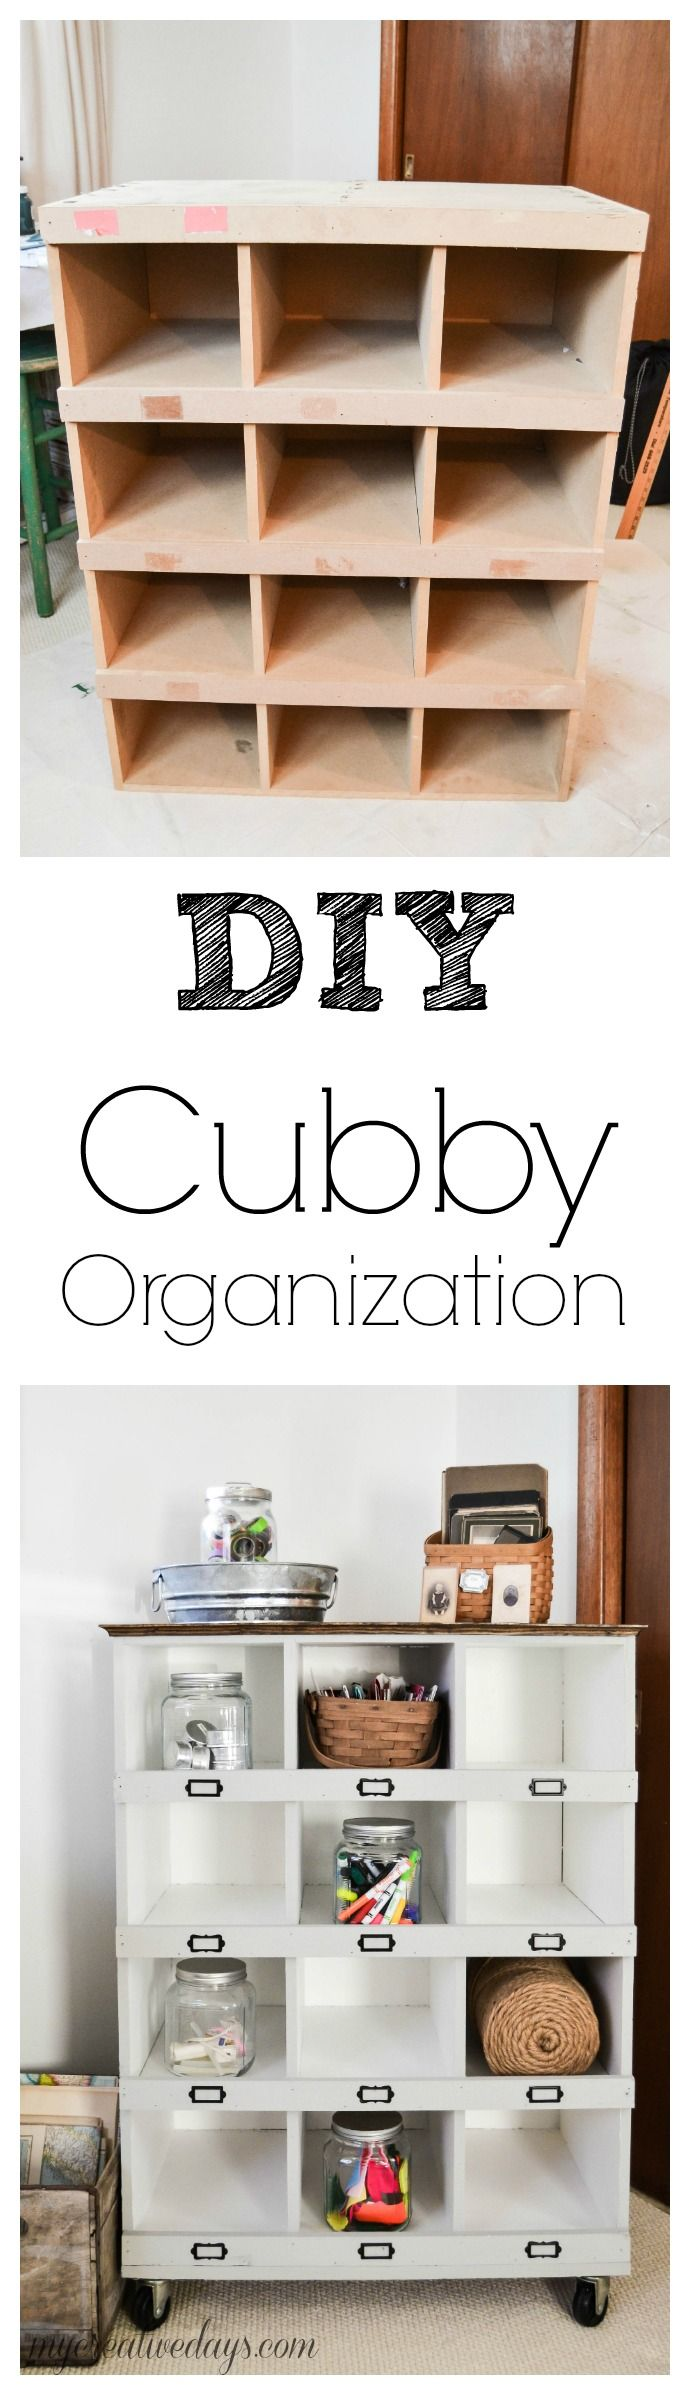 Home Organization Furniture 124 best organizing - using repurposed items images on pinterest